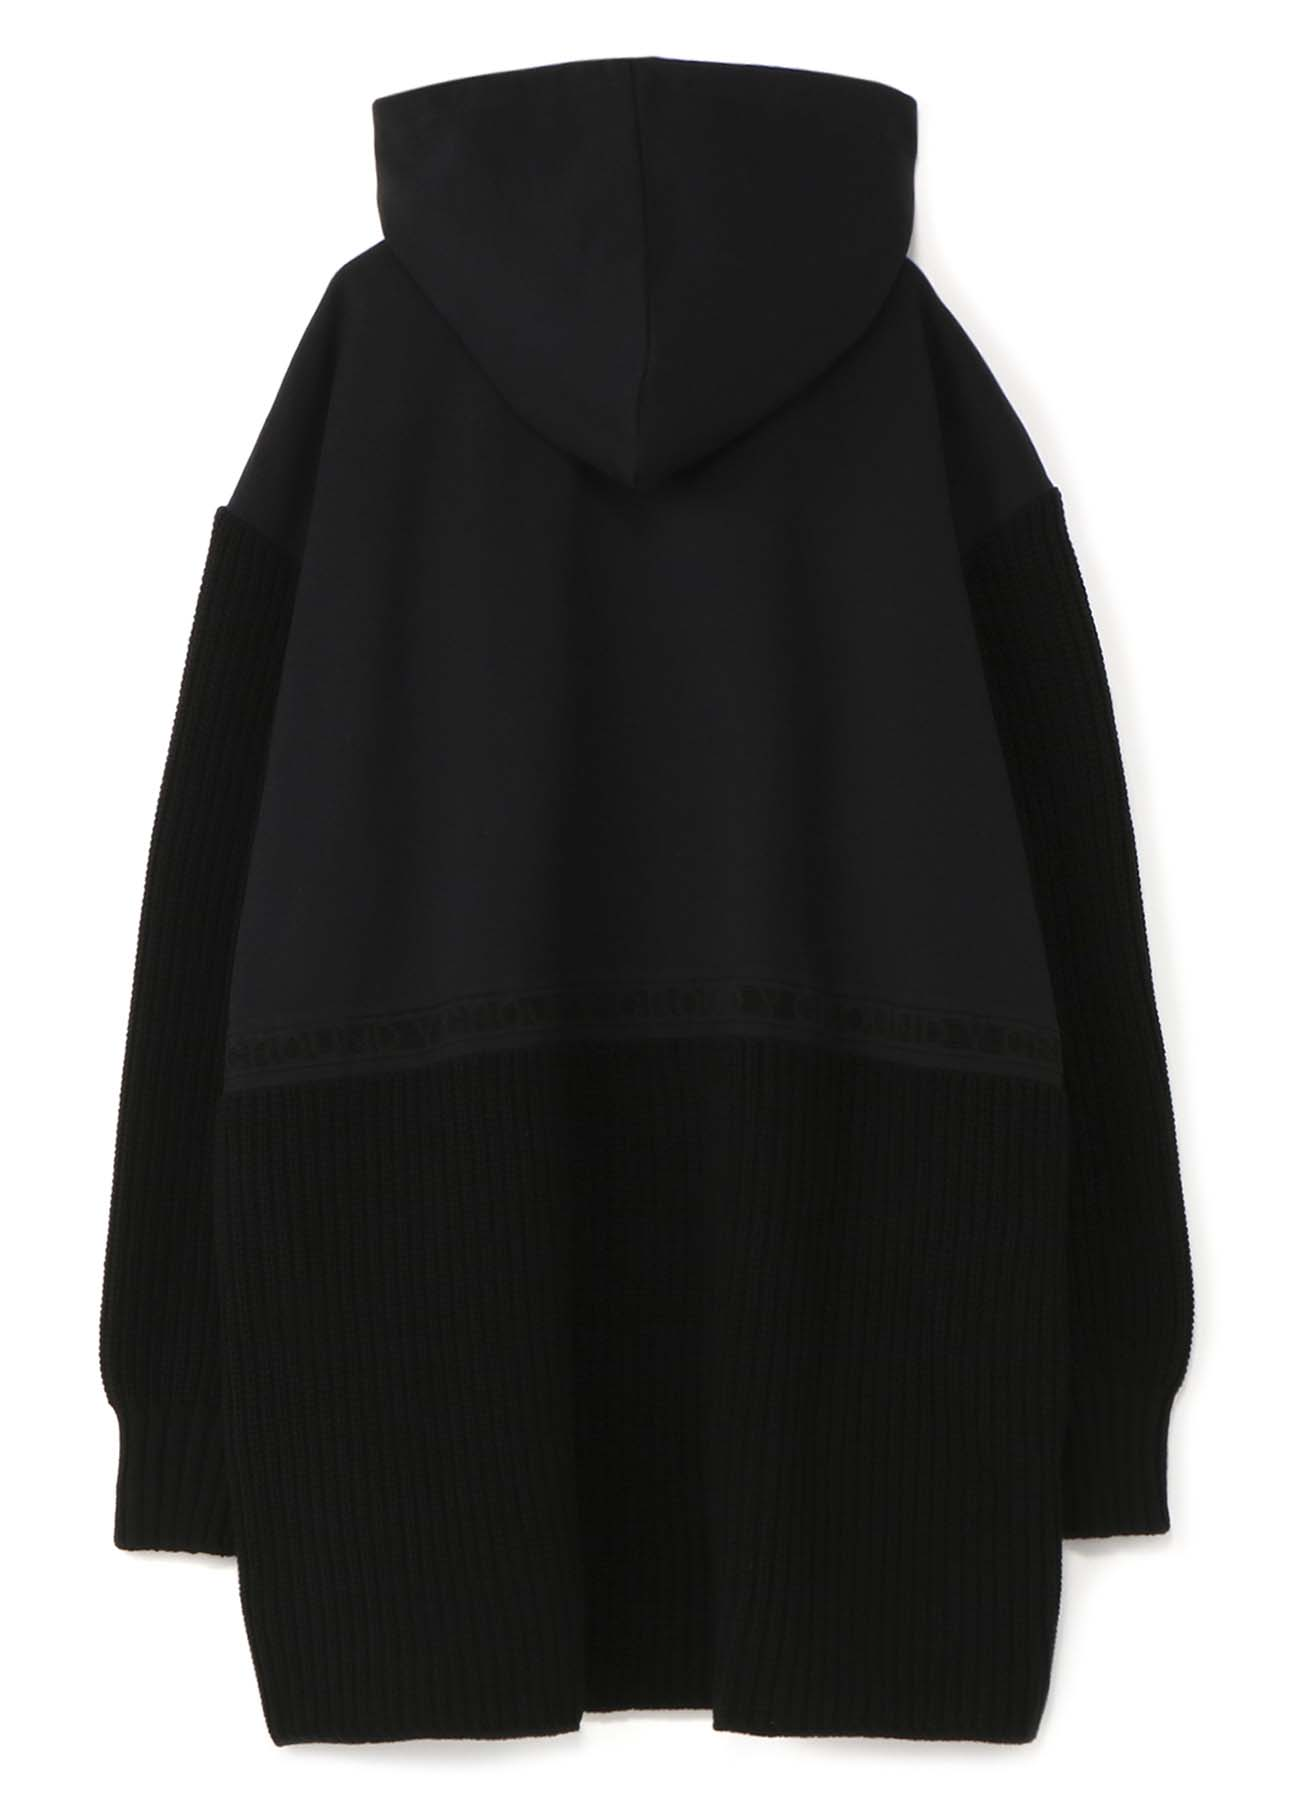 FRED PERRY collaboration Knit x Fleece Long Parka (men's)